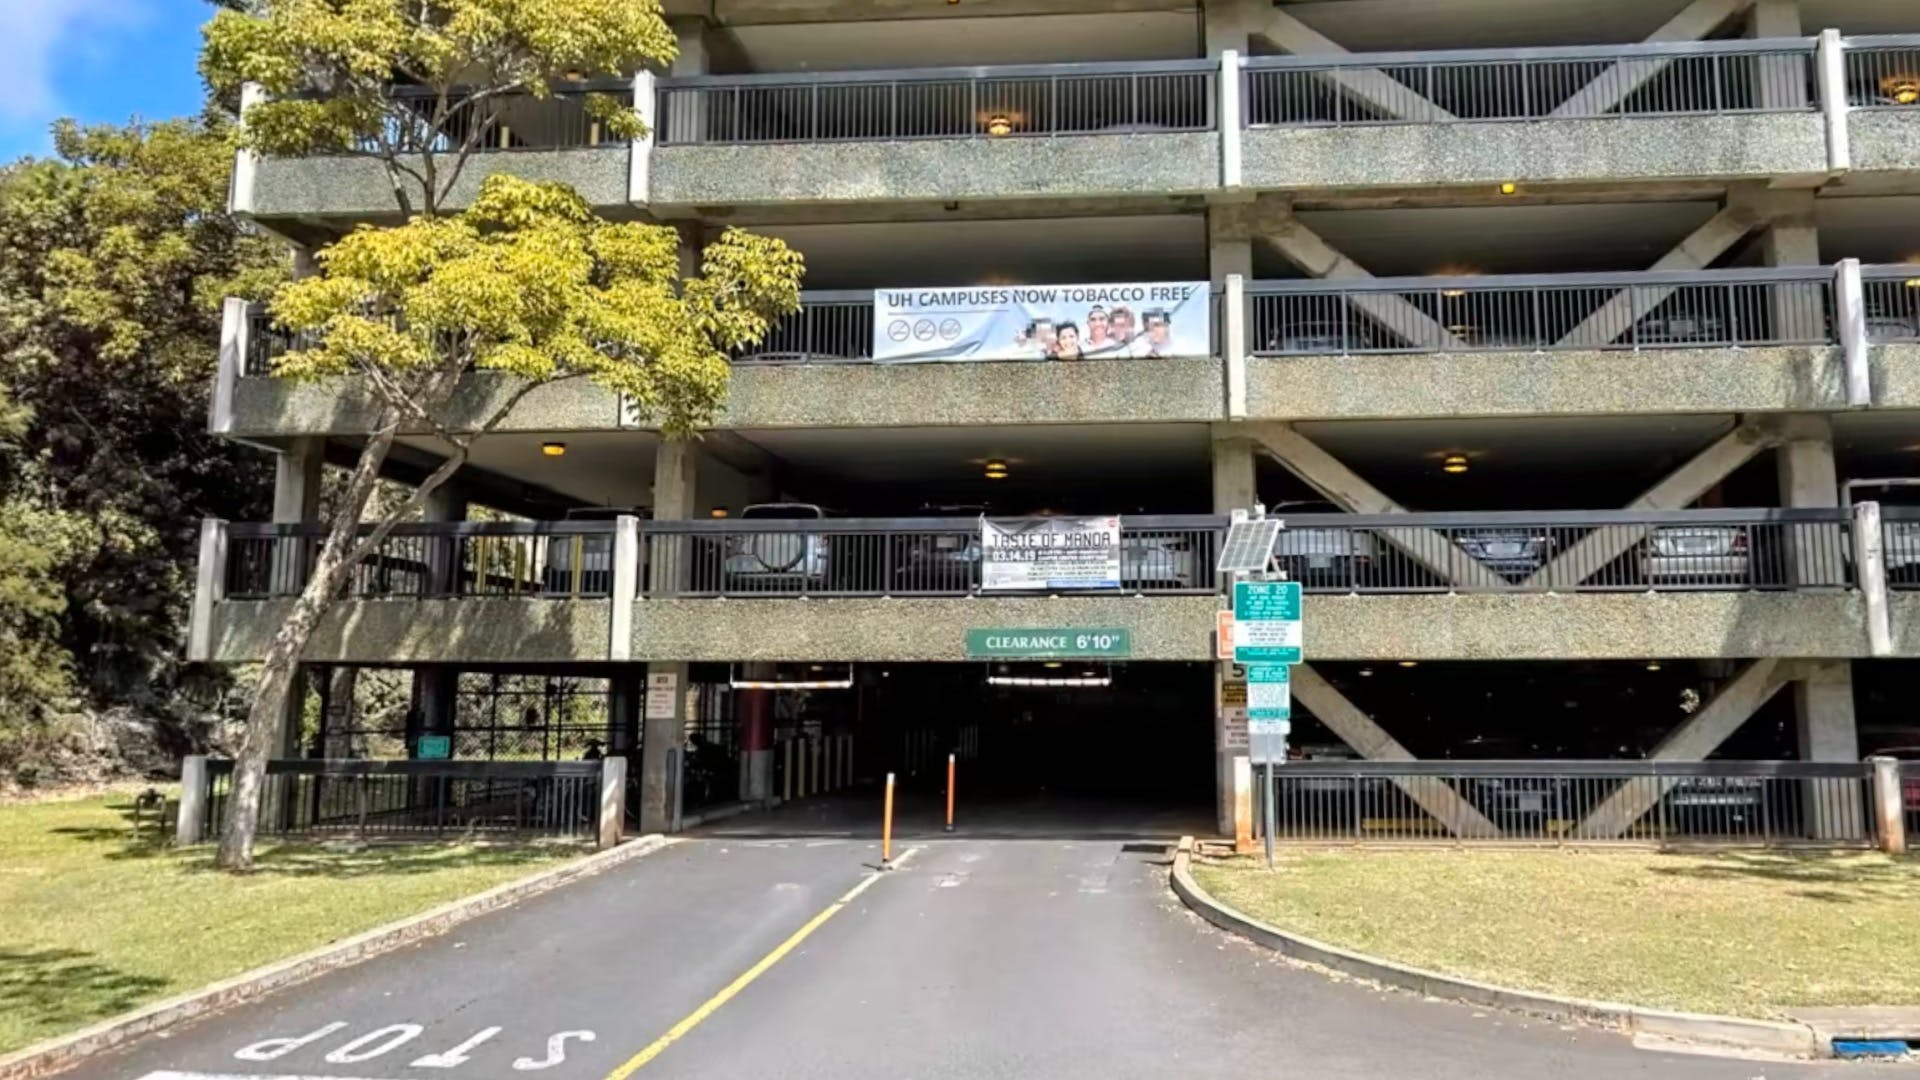 UH-Campus-Entrance-Structure-West.jpg